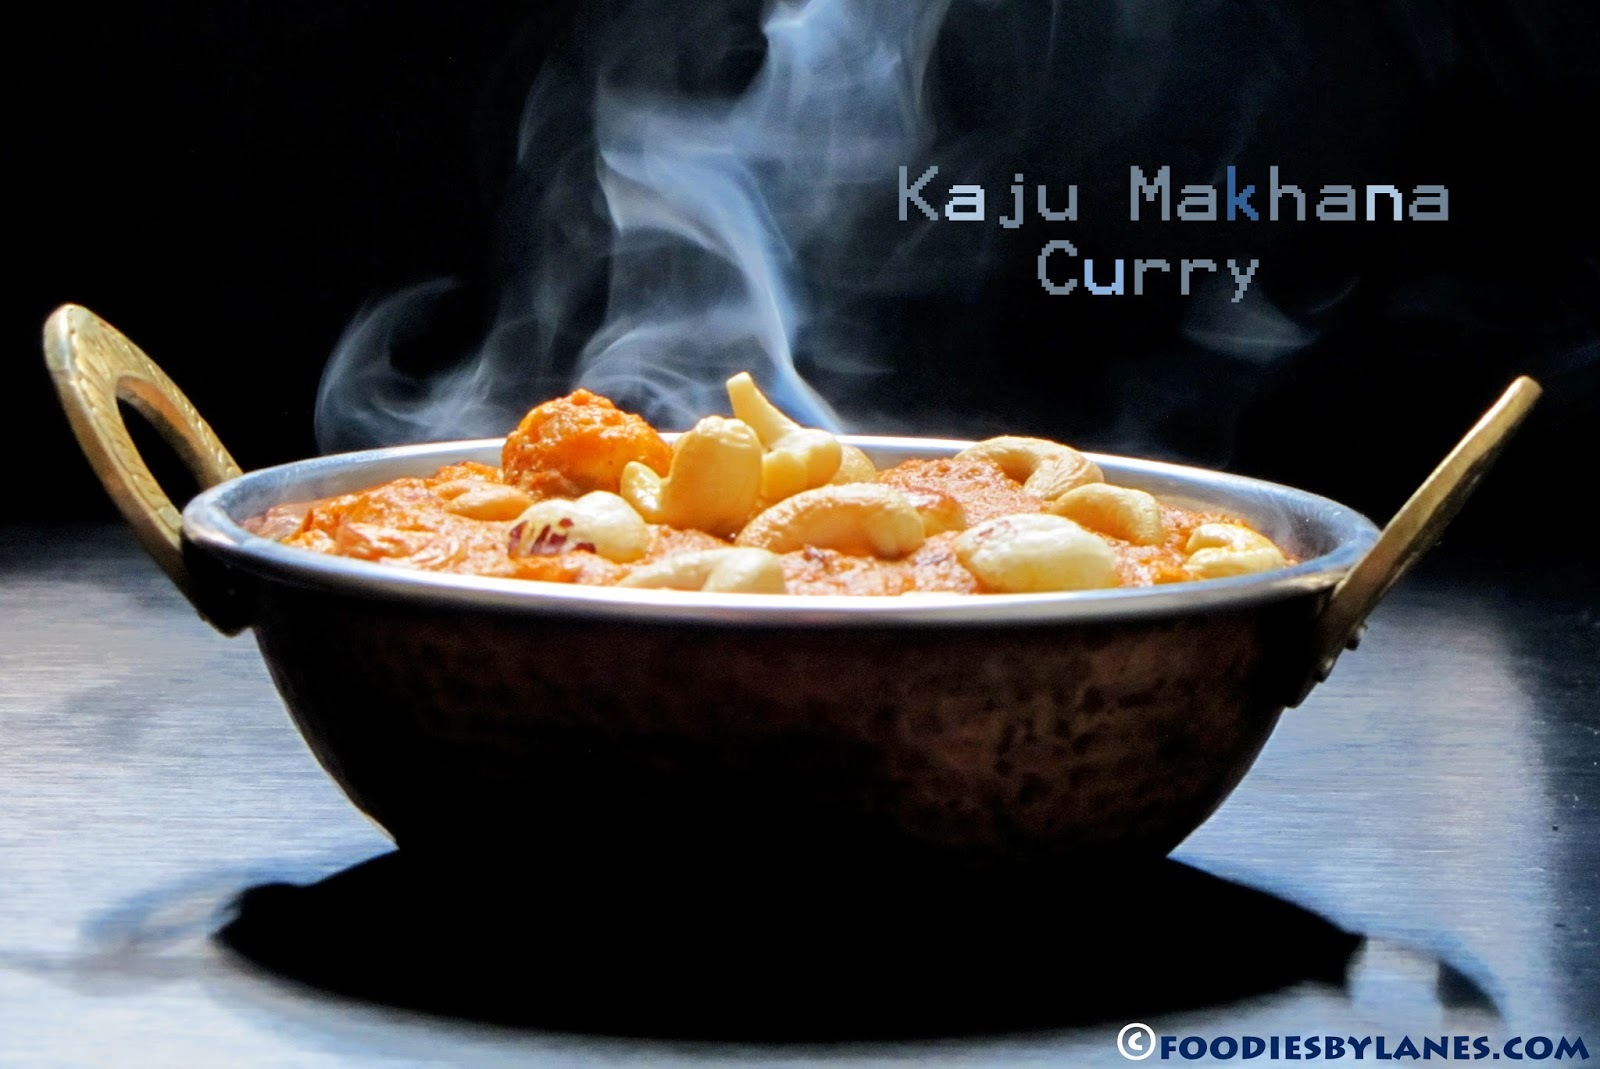 Kaju Makhana Curry